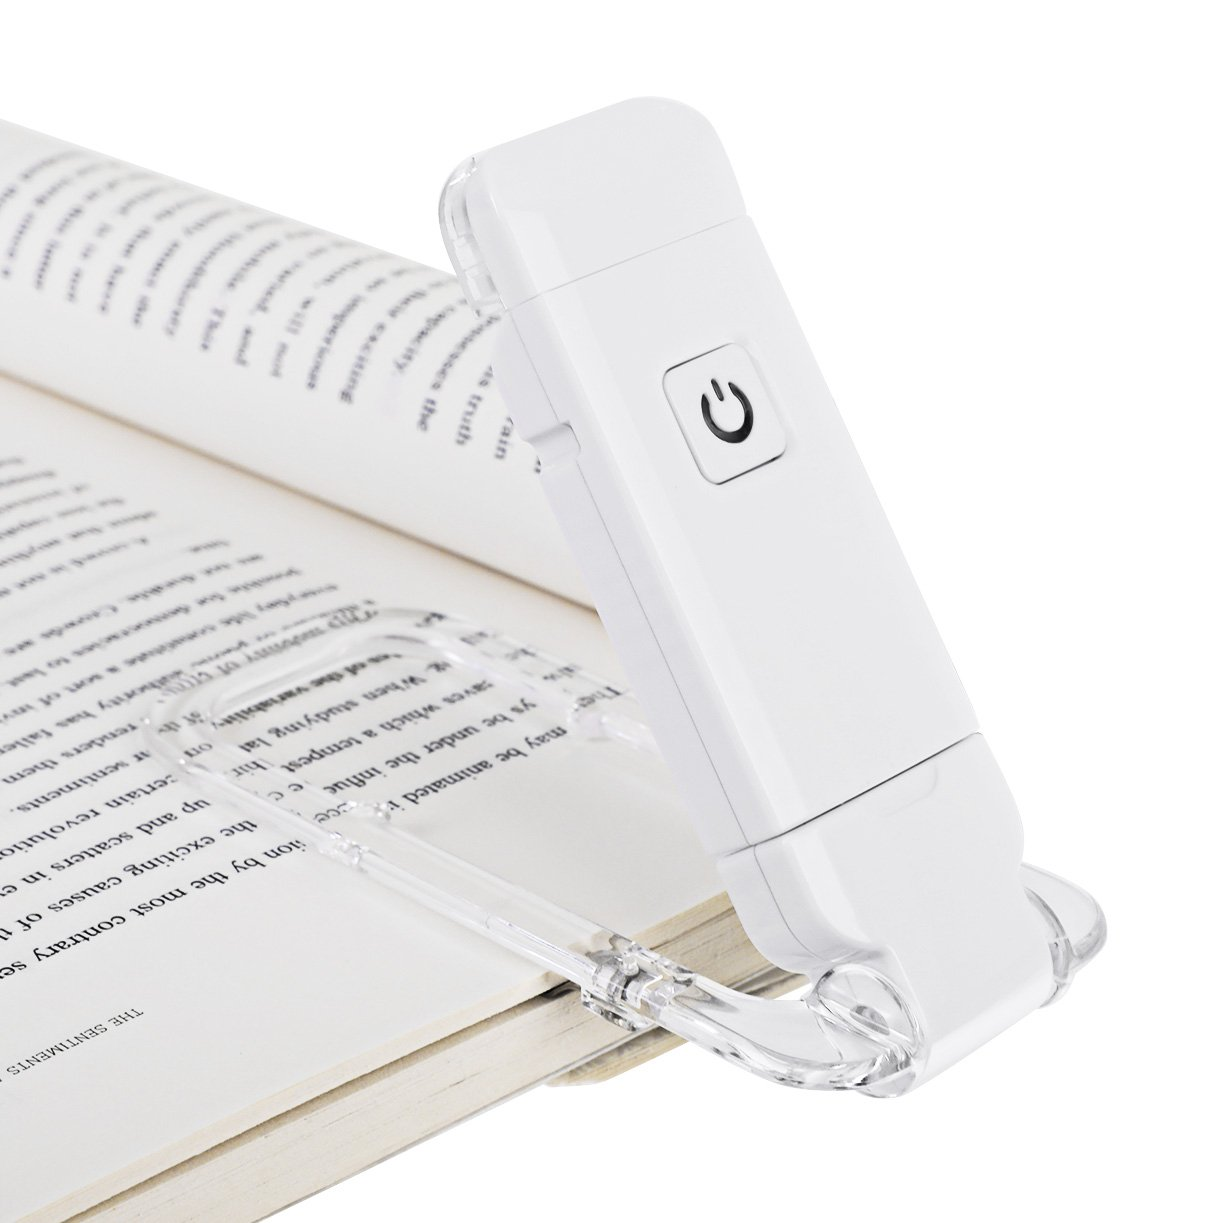 Dewenwils USB Rechargeable Book Light Clip on LED Reading Light, 2 Brightness Levels for Eye-Protection